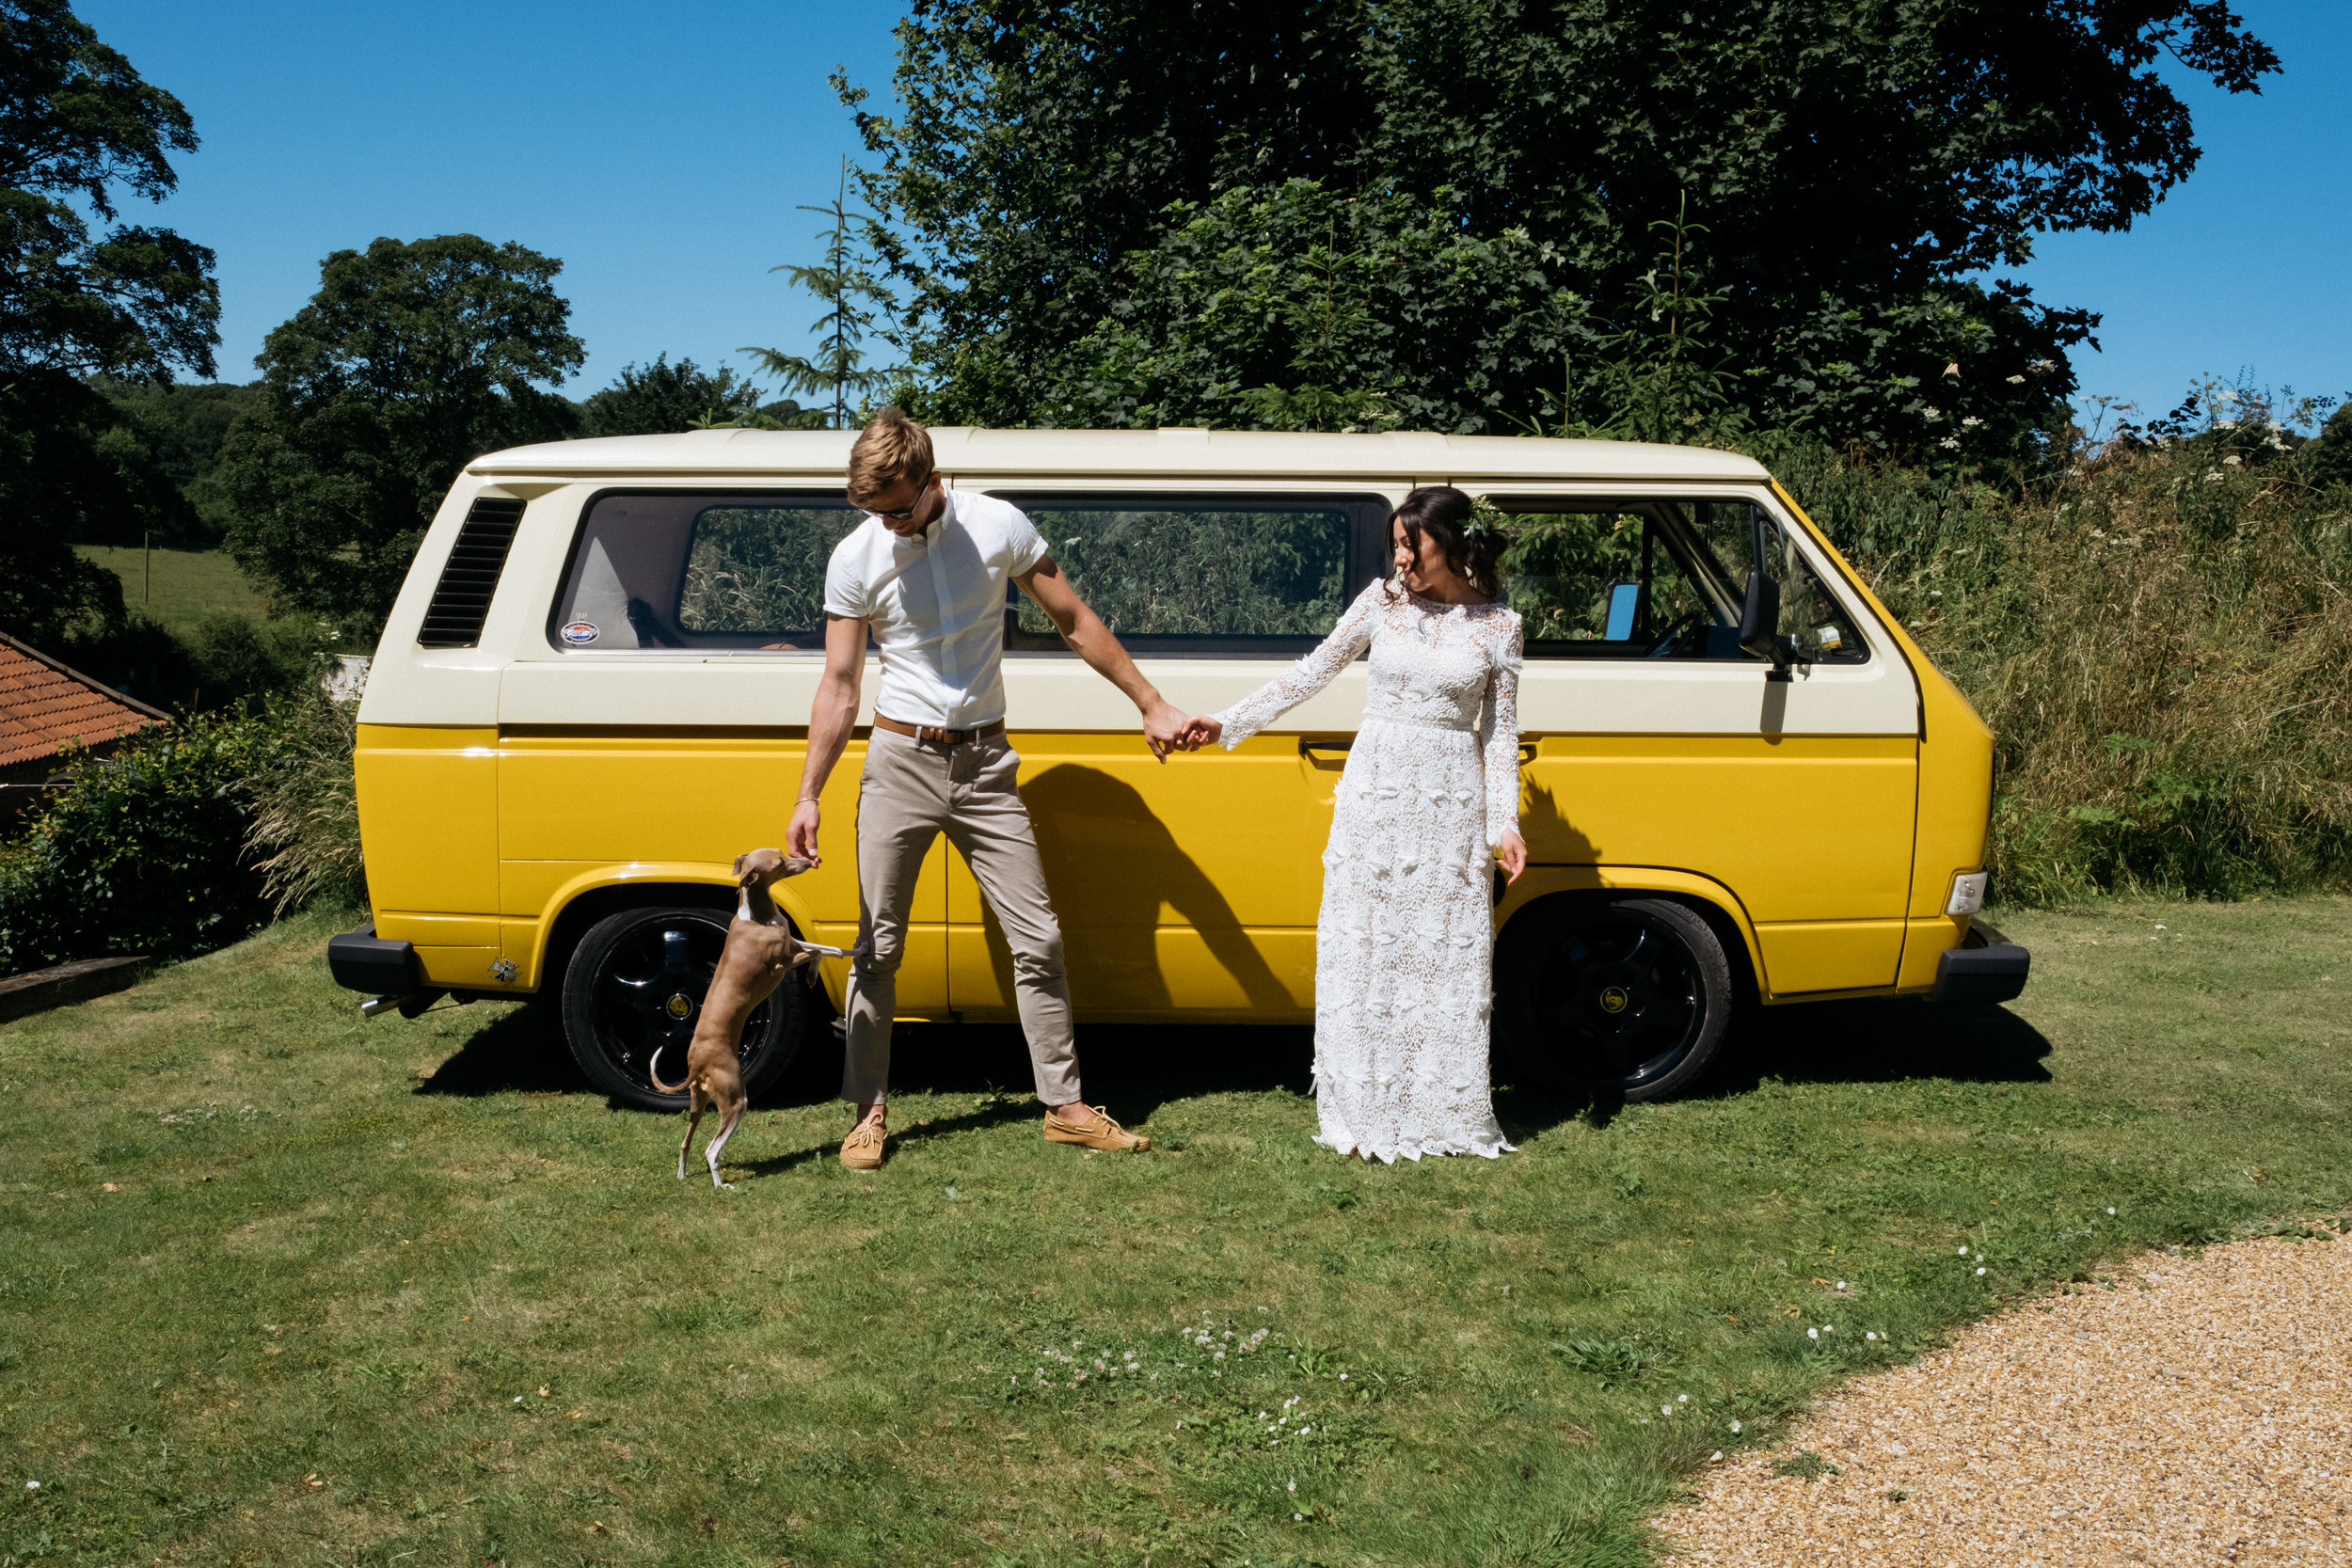 Bride and groom with VW camper van on wedding day